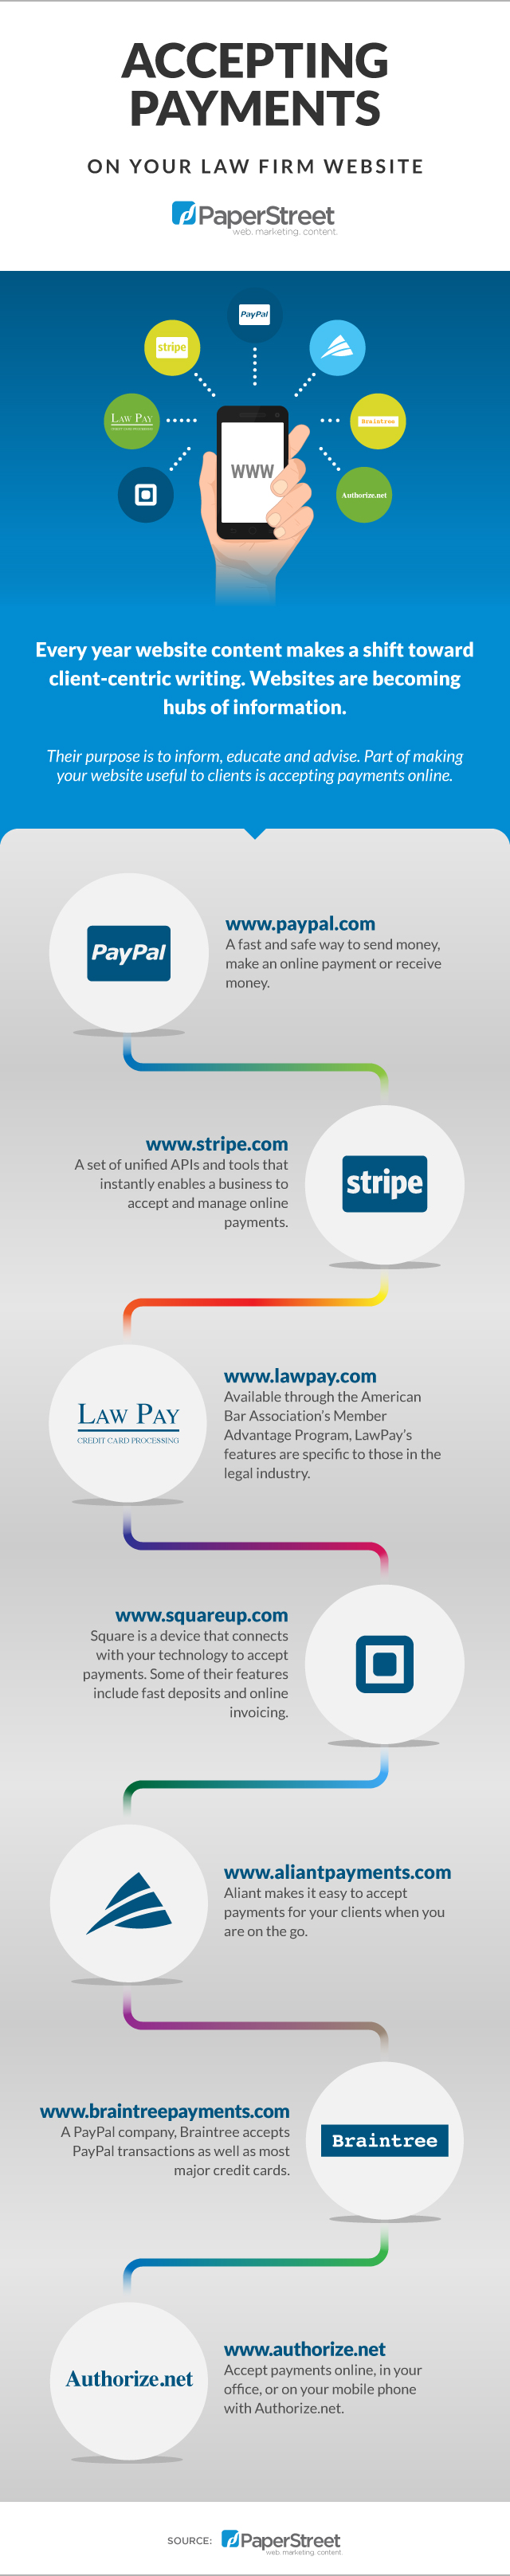 Accepting payments on your law firm website